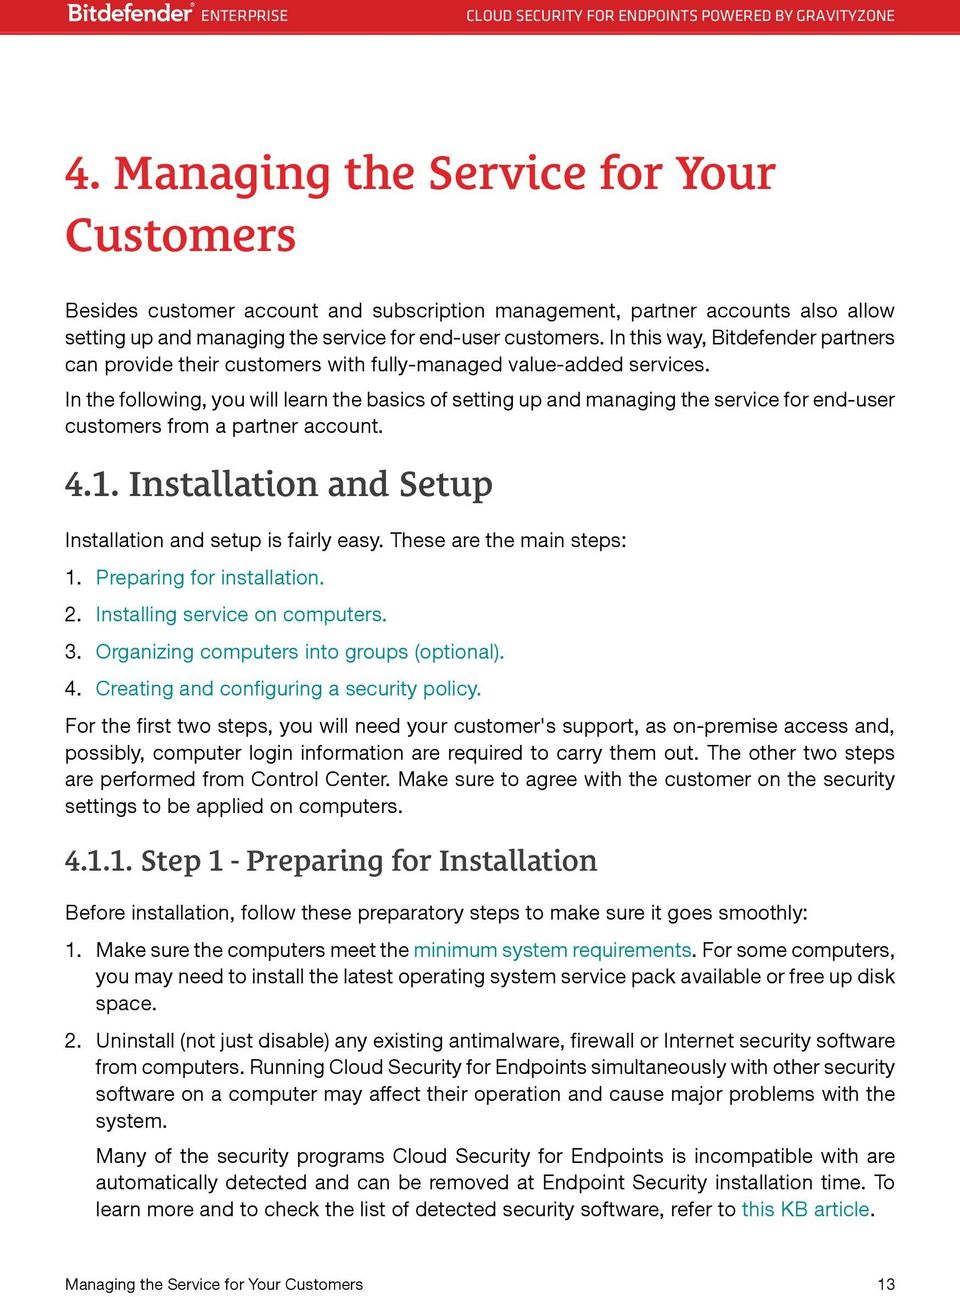 In the following, you will learn the basics of setting up and managing the service for end-user customers from a partner account. 4.1. Installation and Setup Installation and setup is fairly easy.